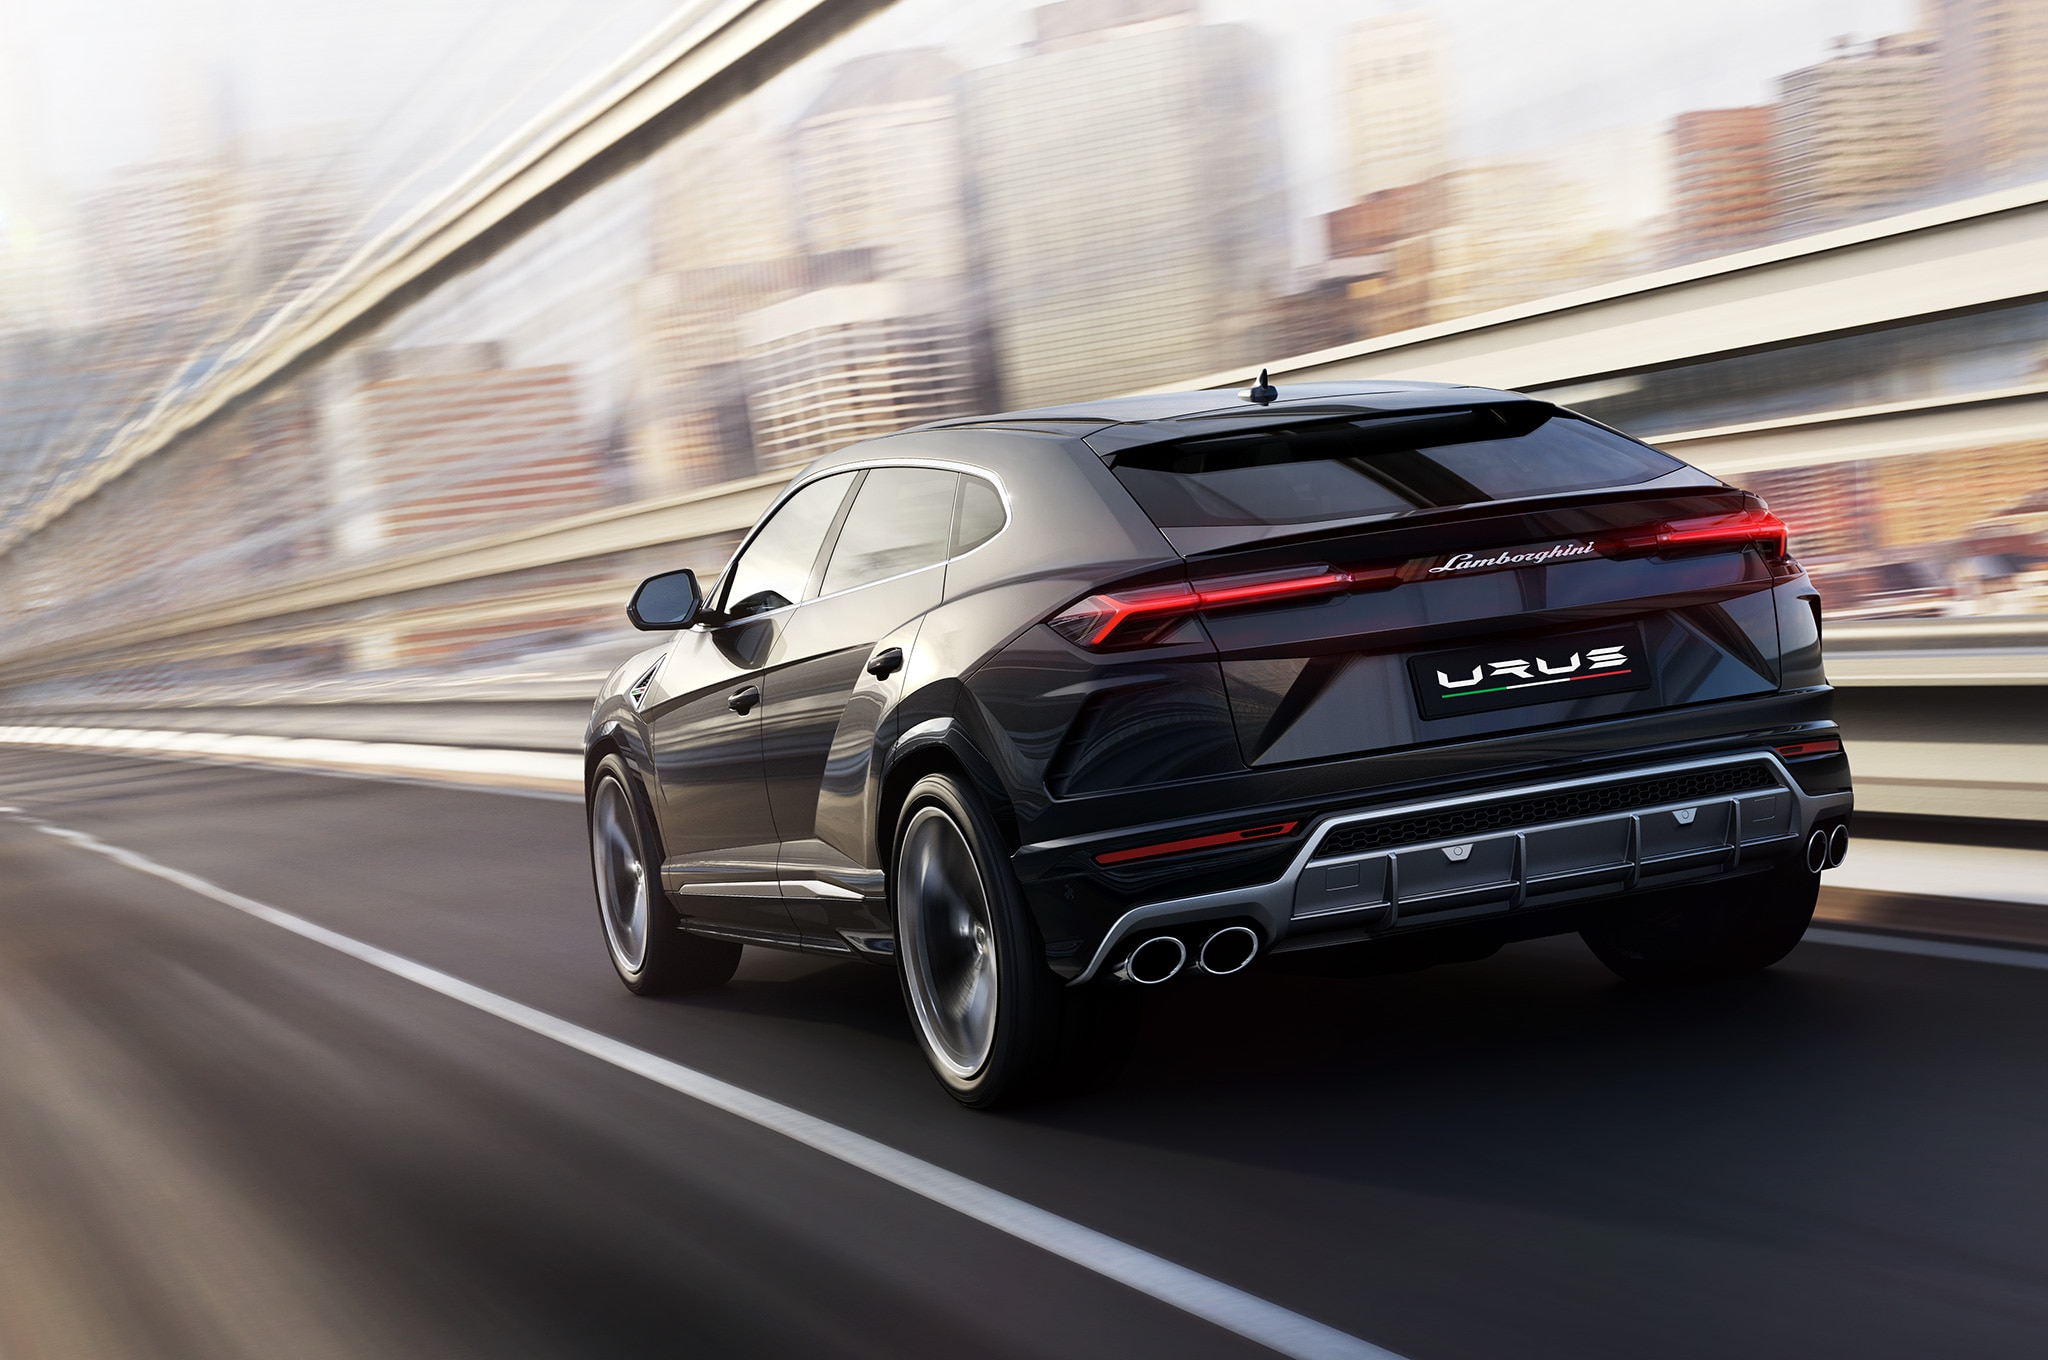 2019 Lamborghini Urus Rear Side View In Motion